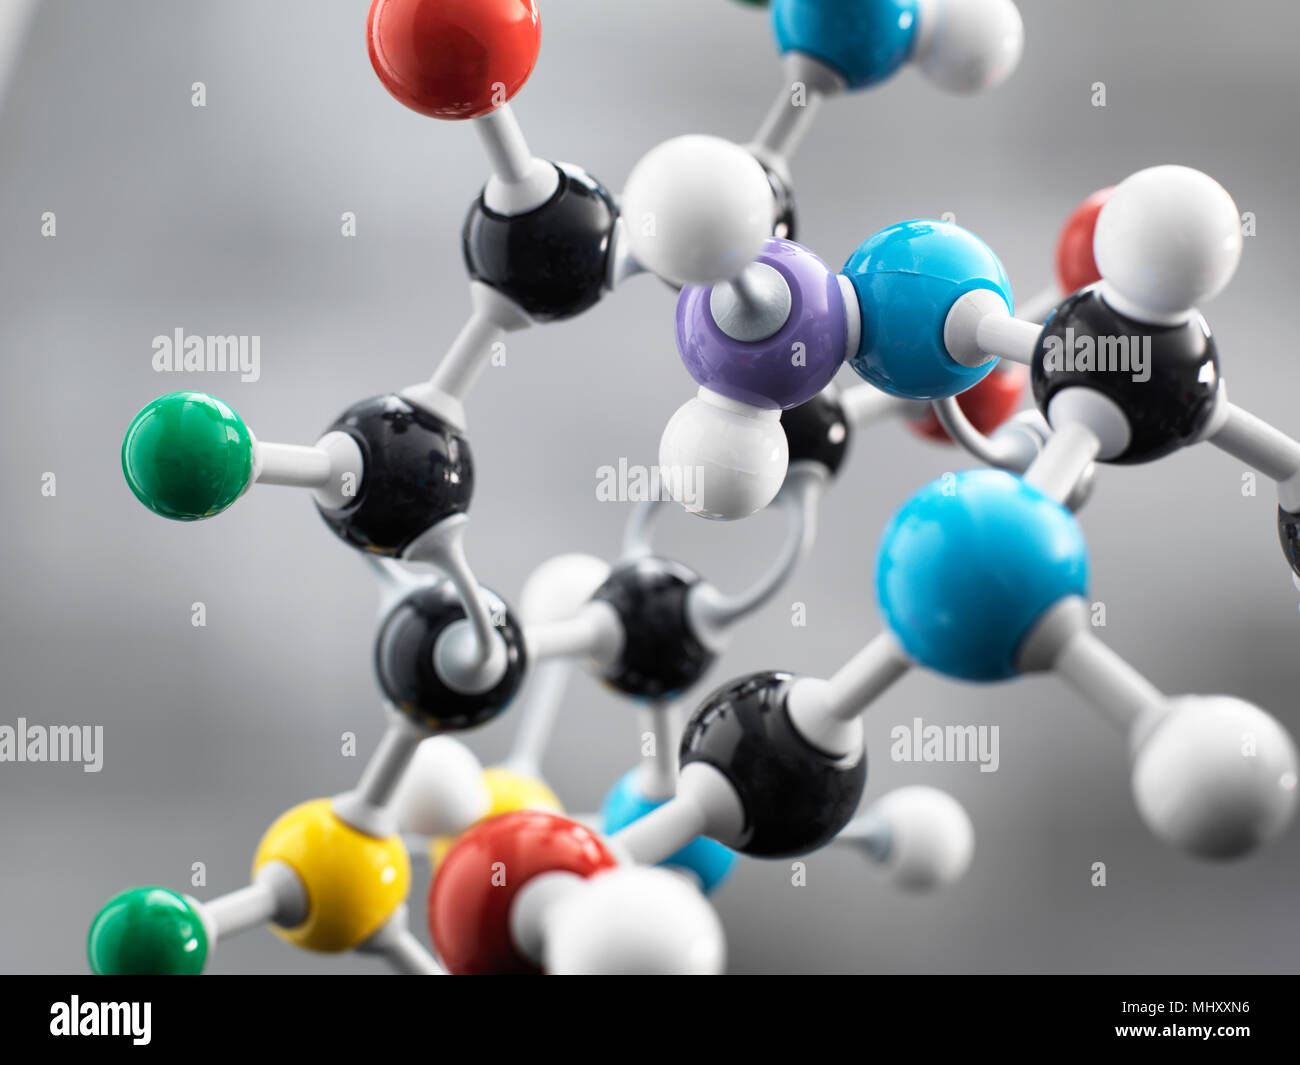 Still life of a ball and stick model illustrating a chemical formula used in research - Stock Image